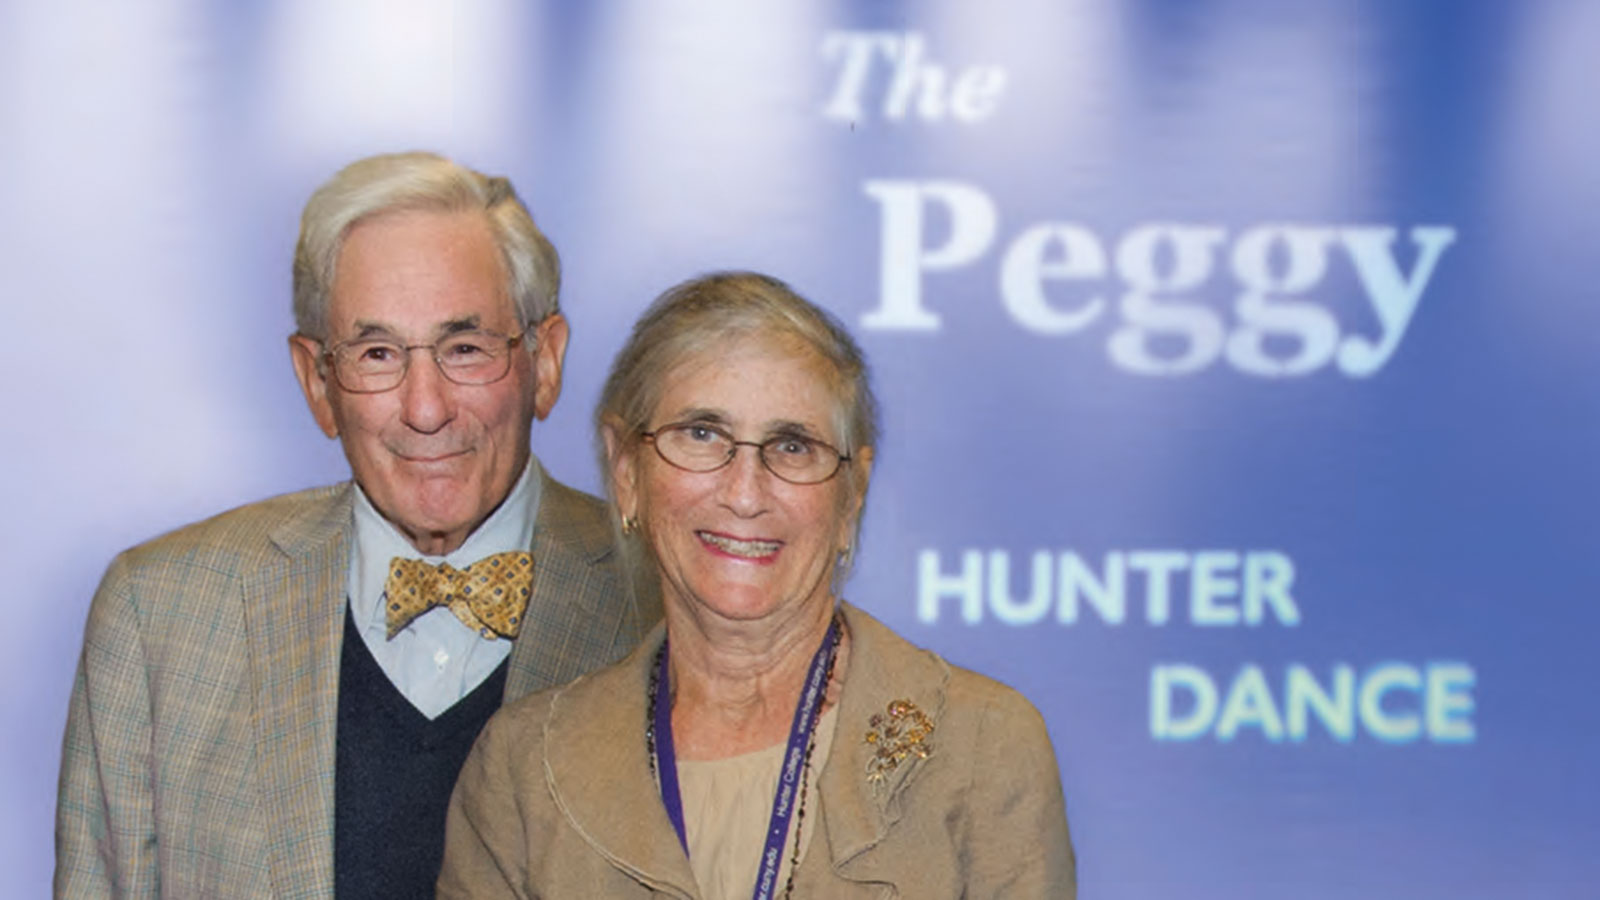 Richard Gilder and Peggy Tirschwell